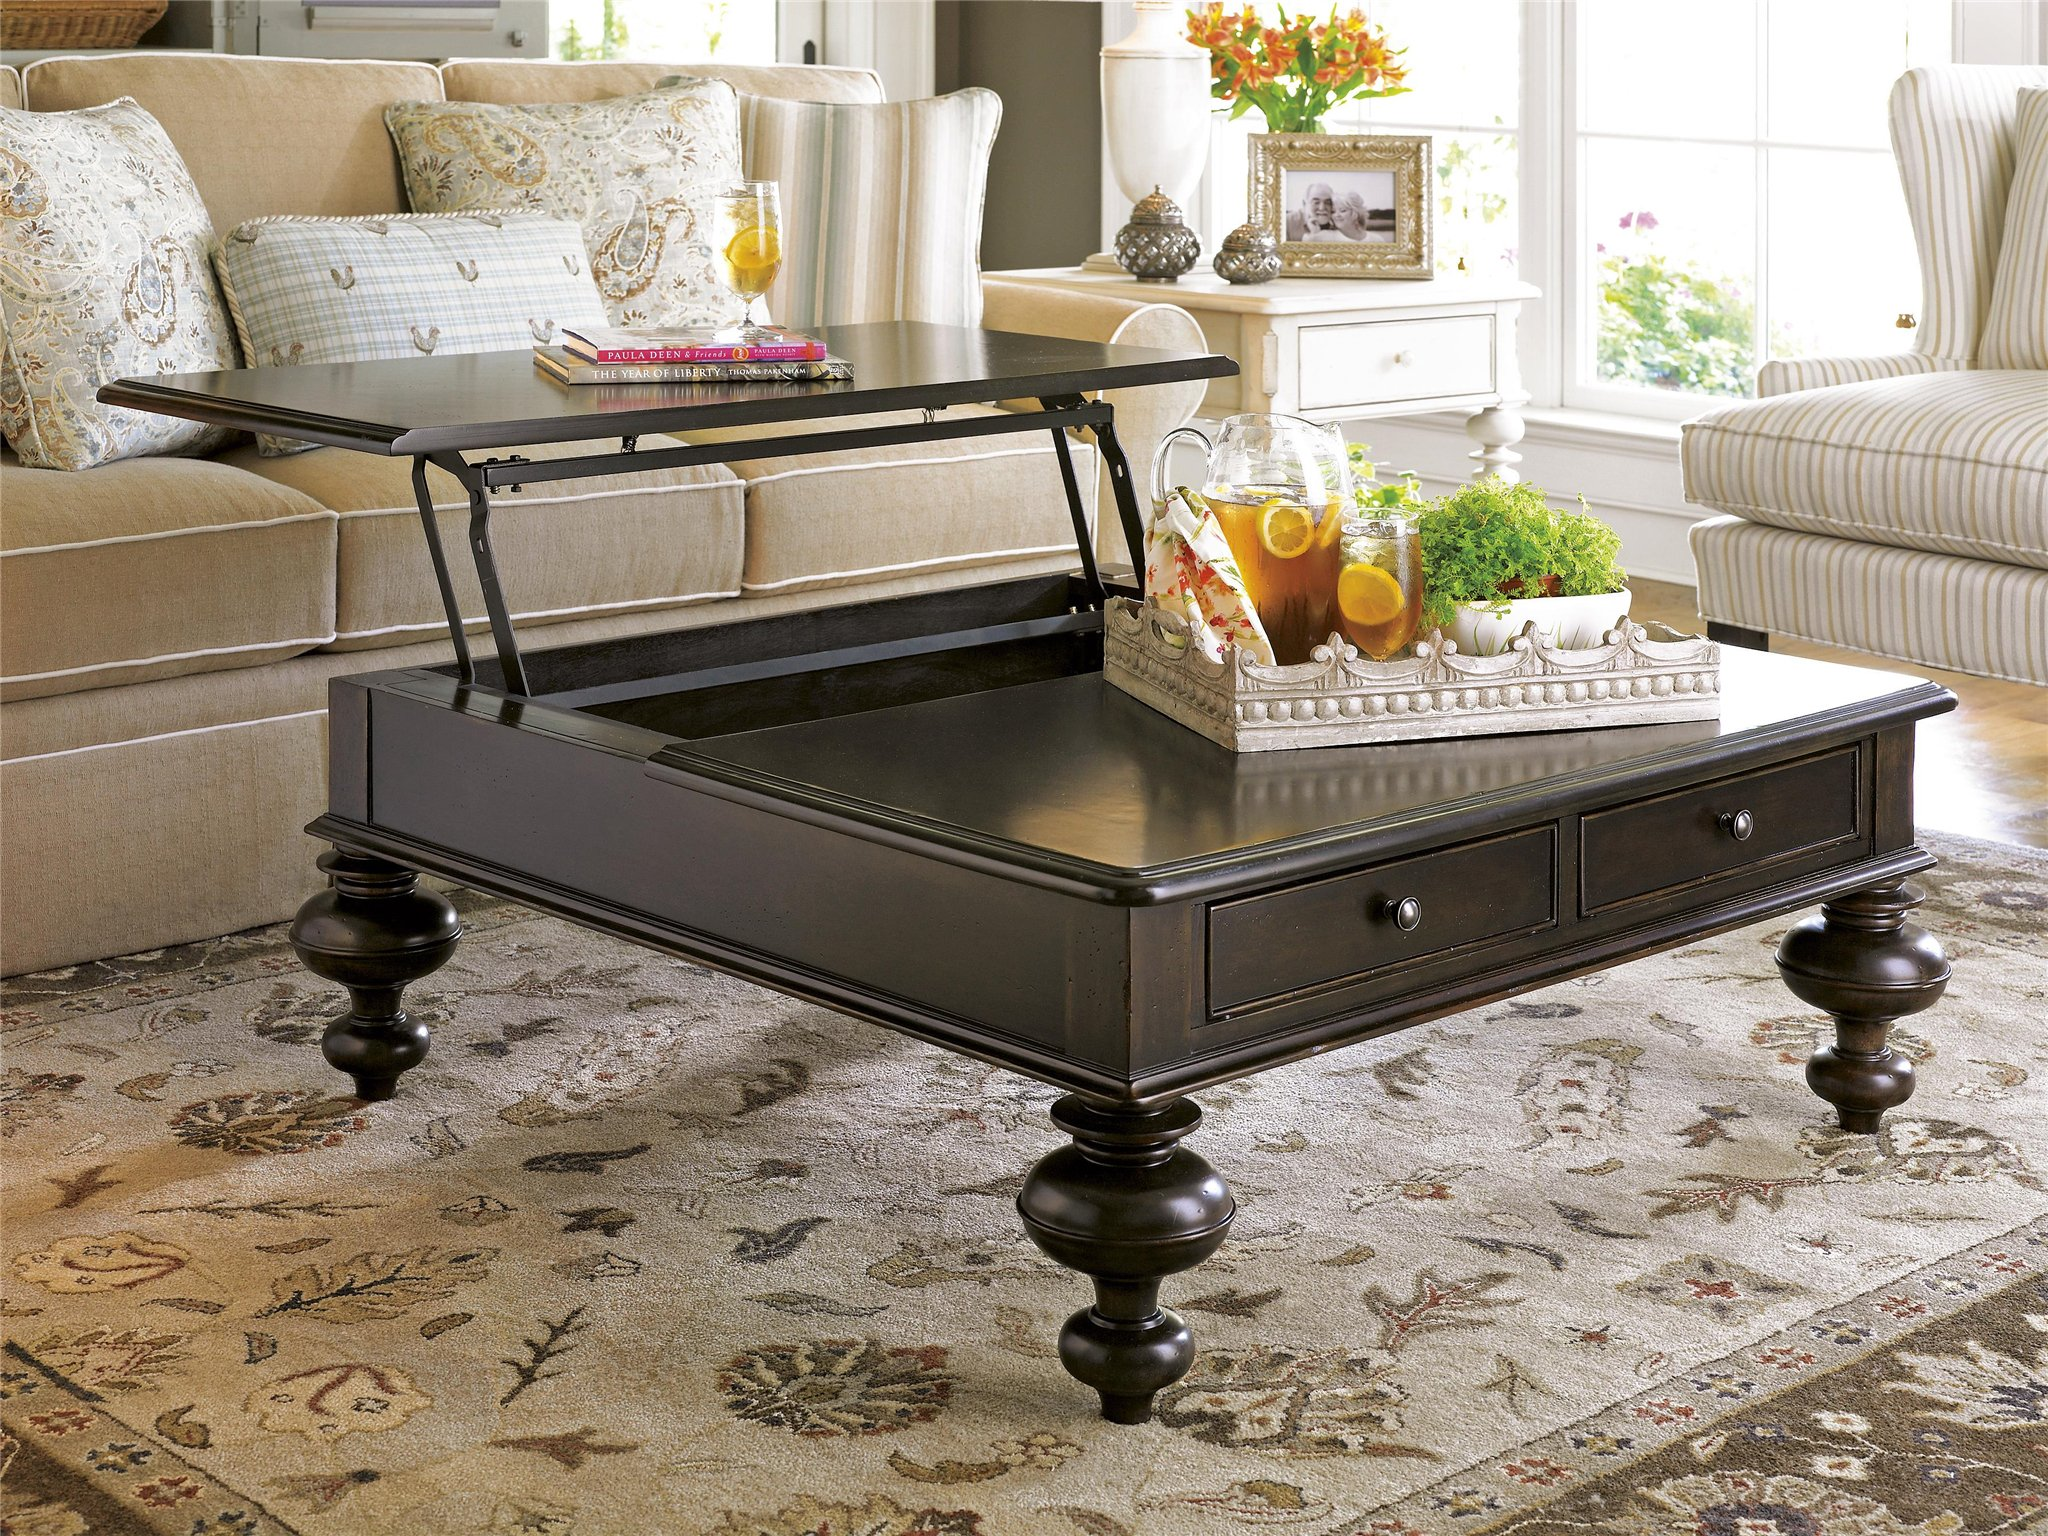 paula deen table and chairs office chair houston universal furniture home put your feet up